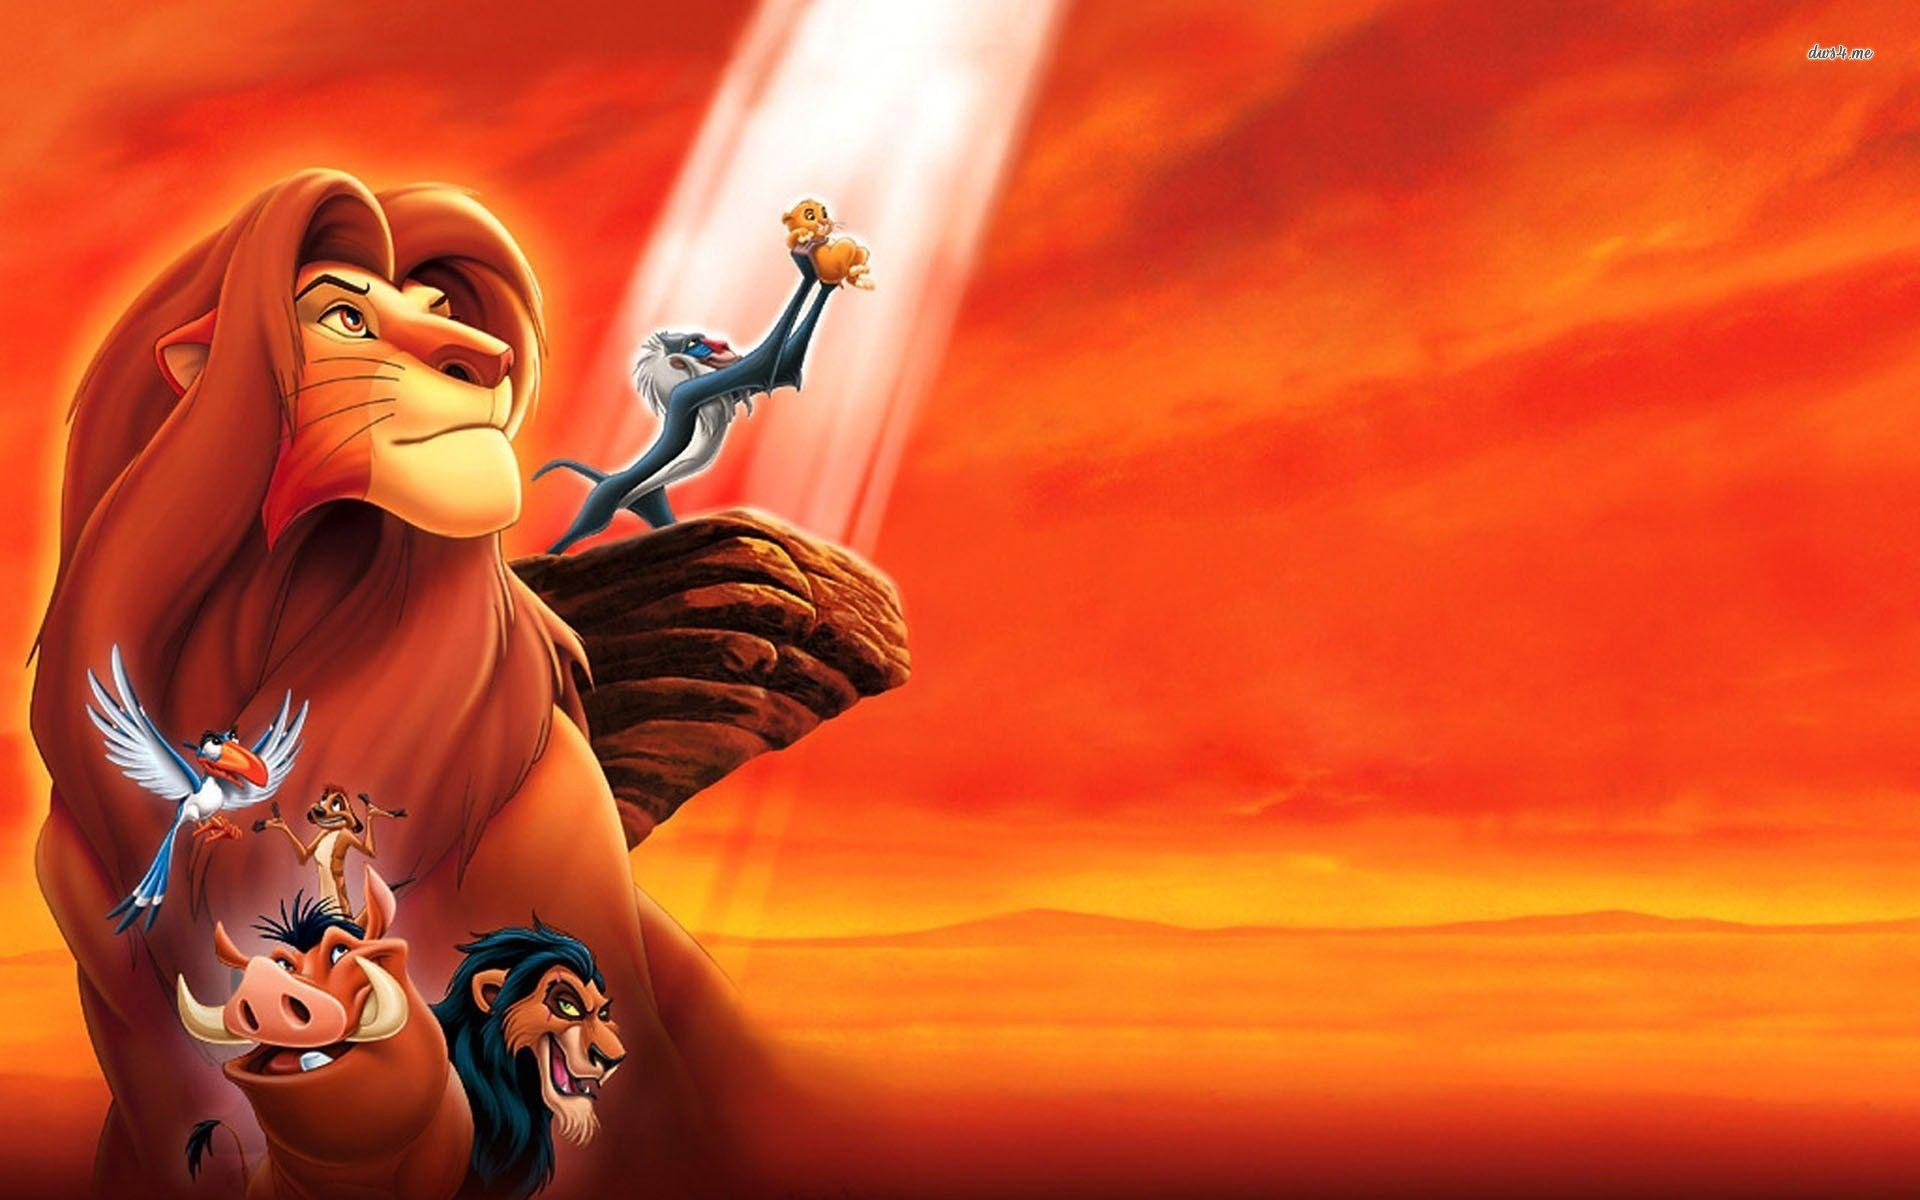 The lion king wallpapers wallpaper cave - Lion king wallpaper ...